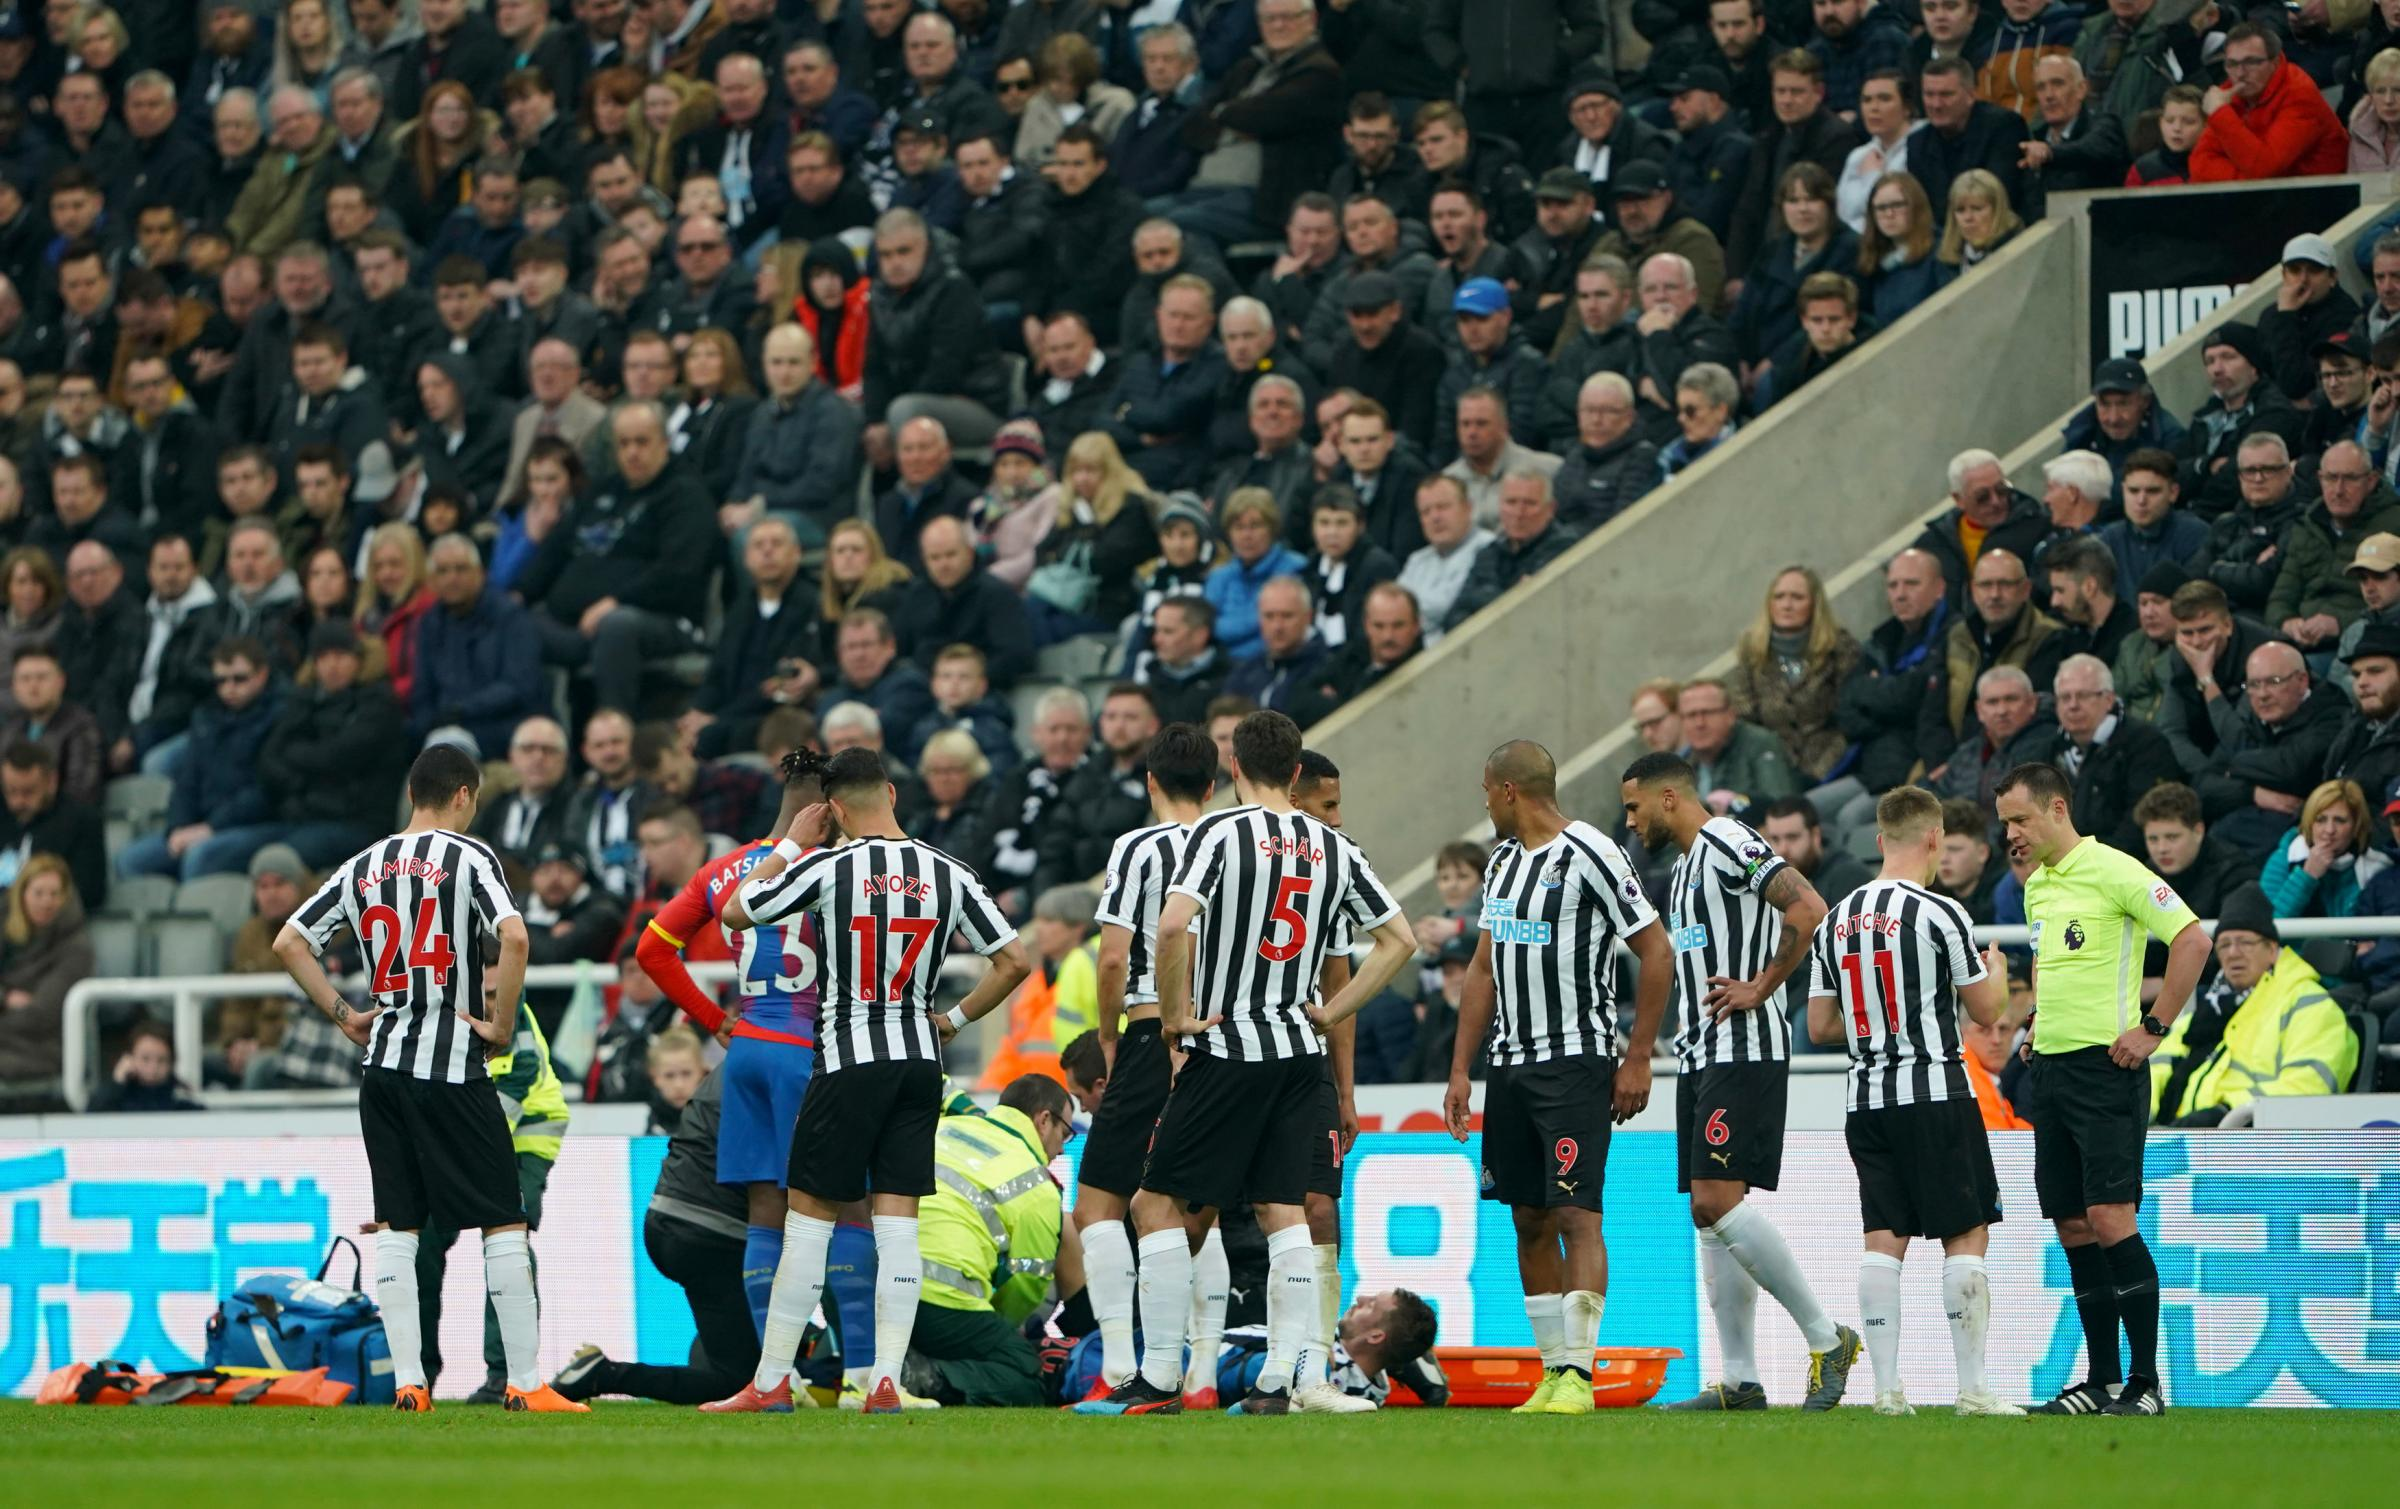 INJURY BLOW: Florian Lejeune receives treatment before leaving the field on a stretcher (Picture: Owen Humphreys/PA Wire)